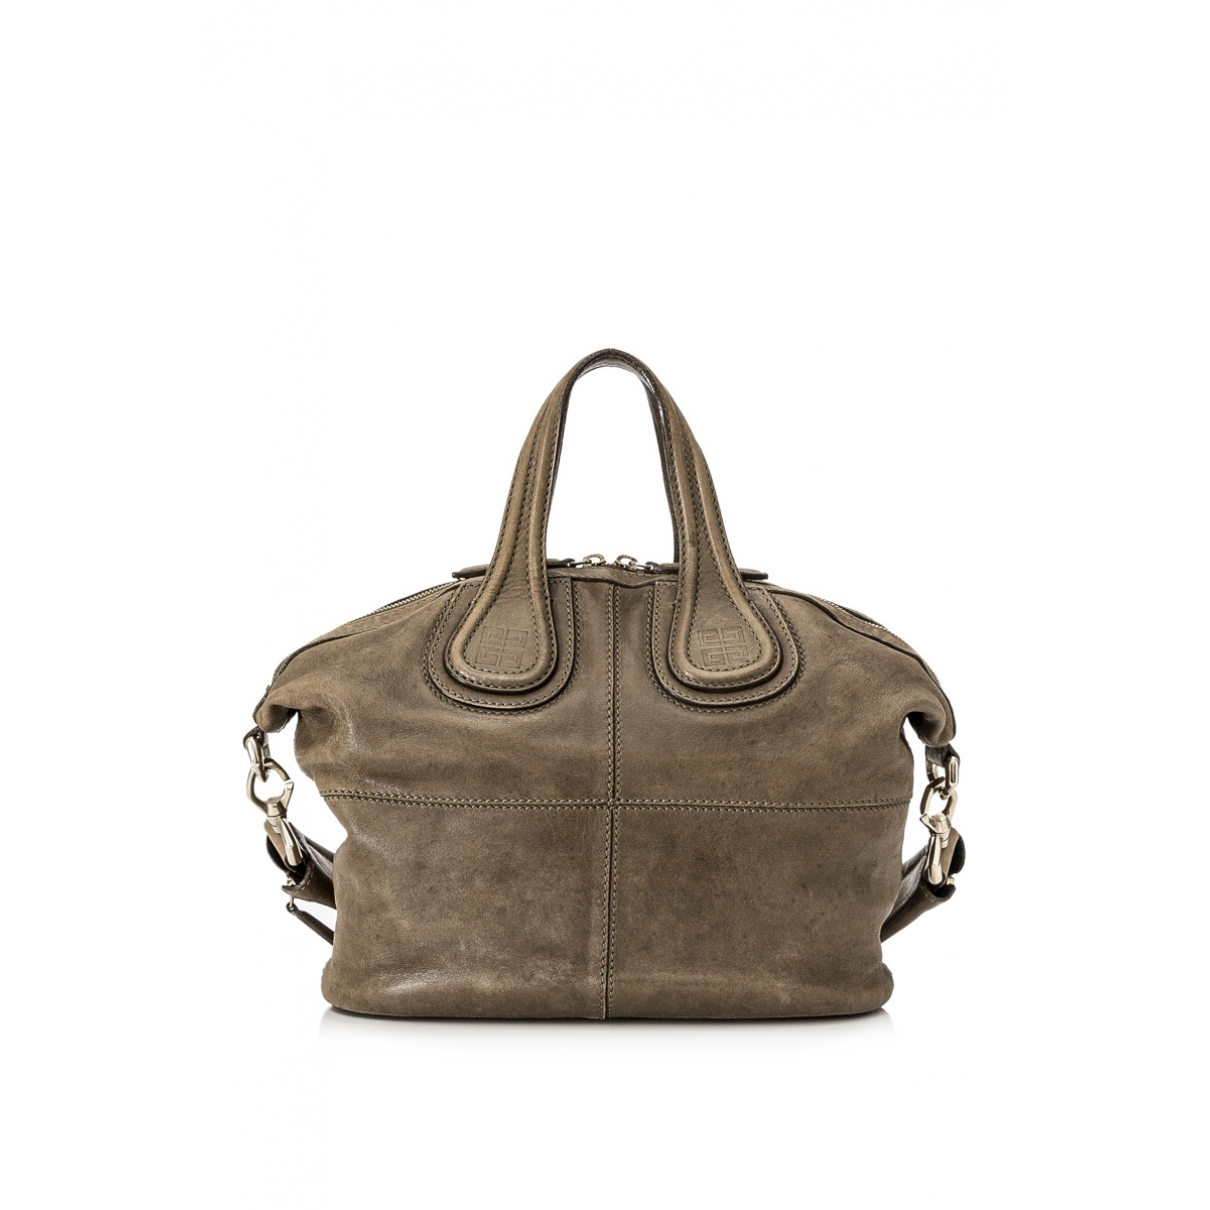 Givenchy Nightingale Handtasche in  Khaki Leder